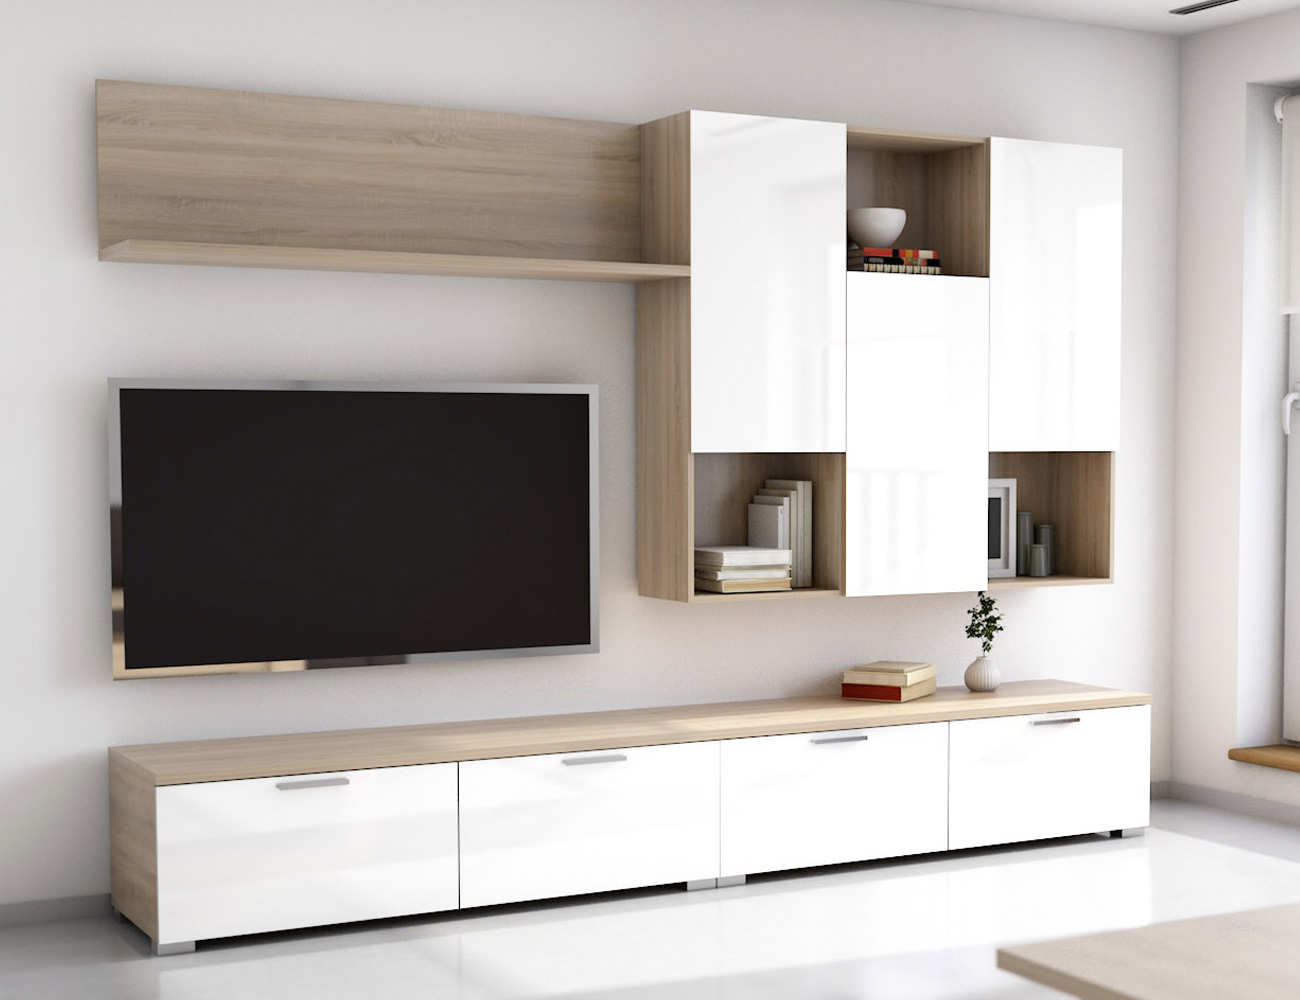 Mueble salon blanco coleccin galiano modular de saln for Mueble salon blanco y roble